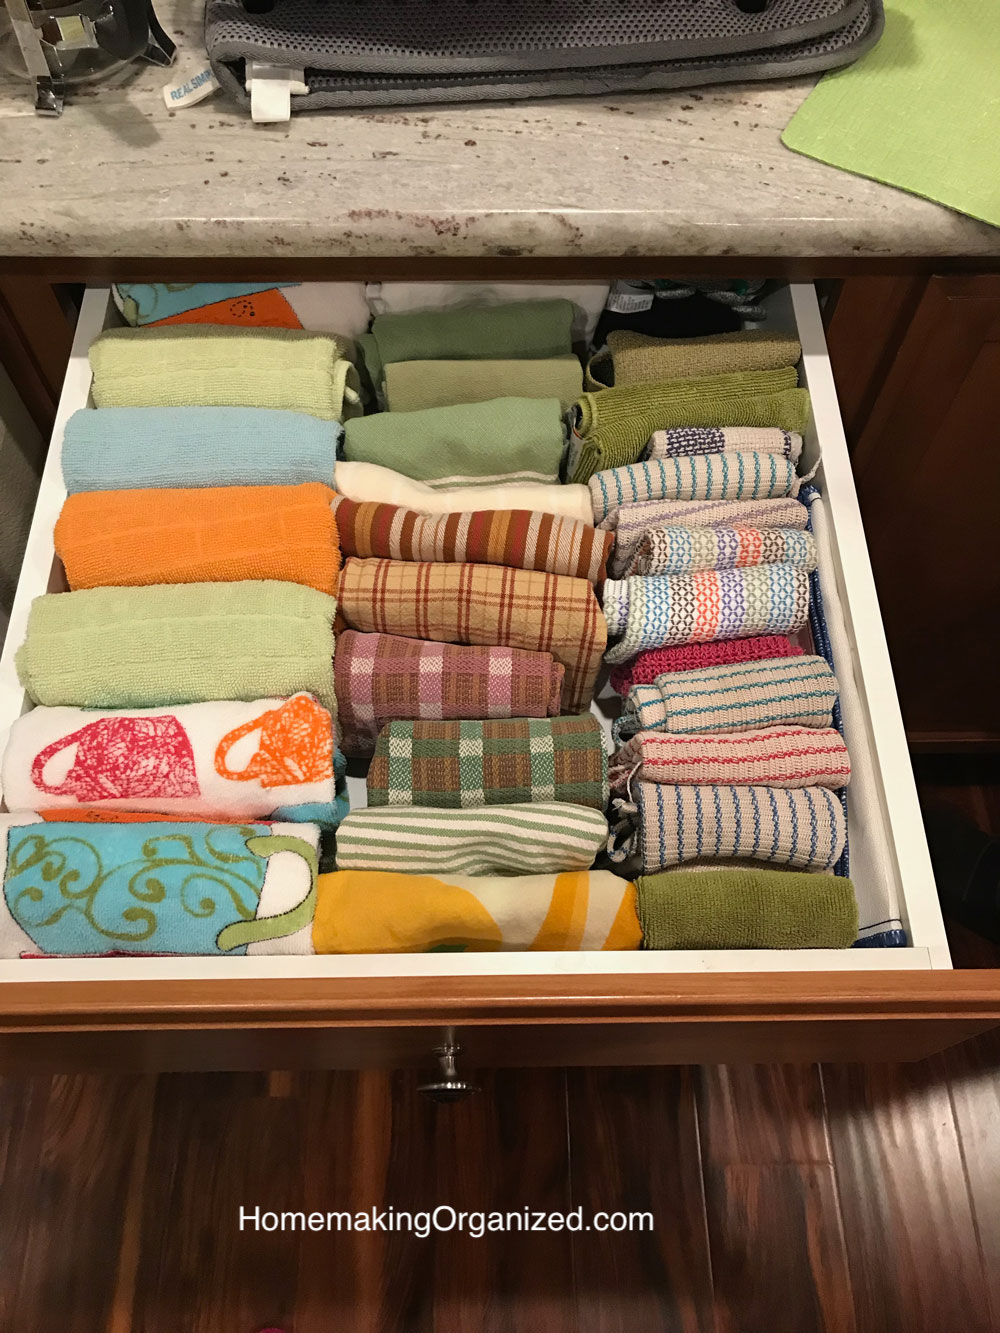 Kitchen linens folded in a drawer Marie Kondo Style.